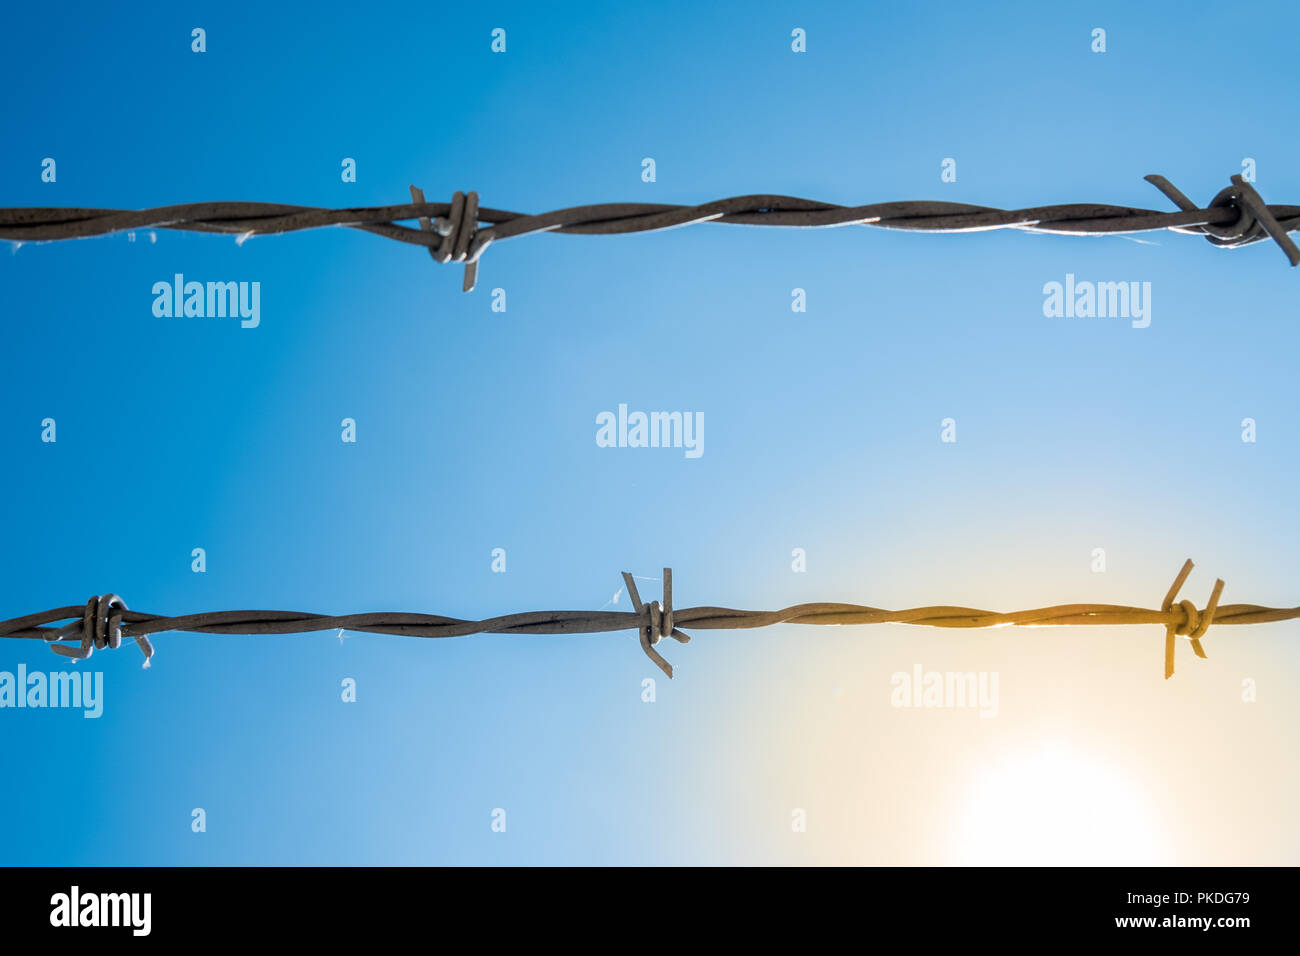 Two strands of barbed wire with blue sky in the background and sunlight - Stock Image